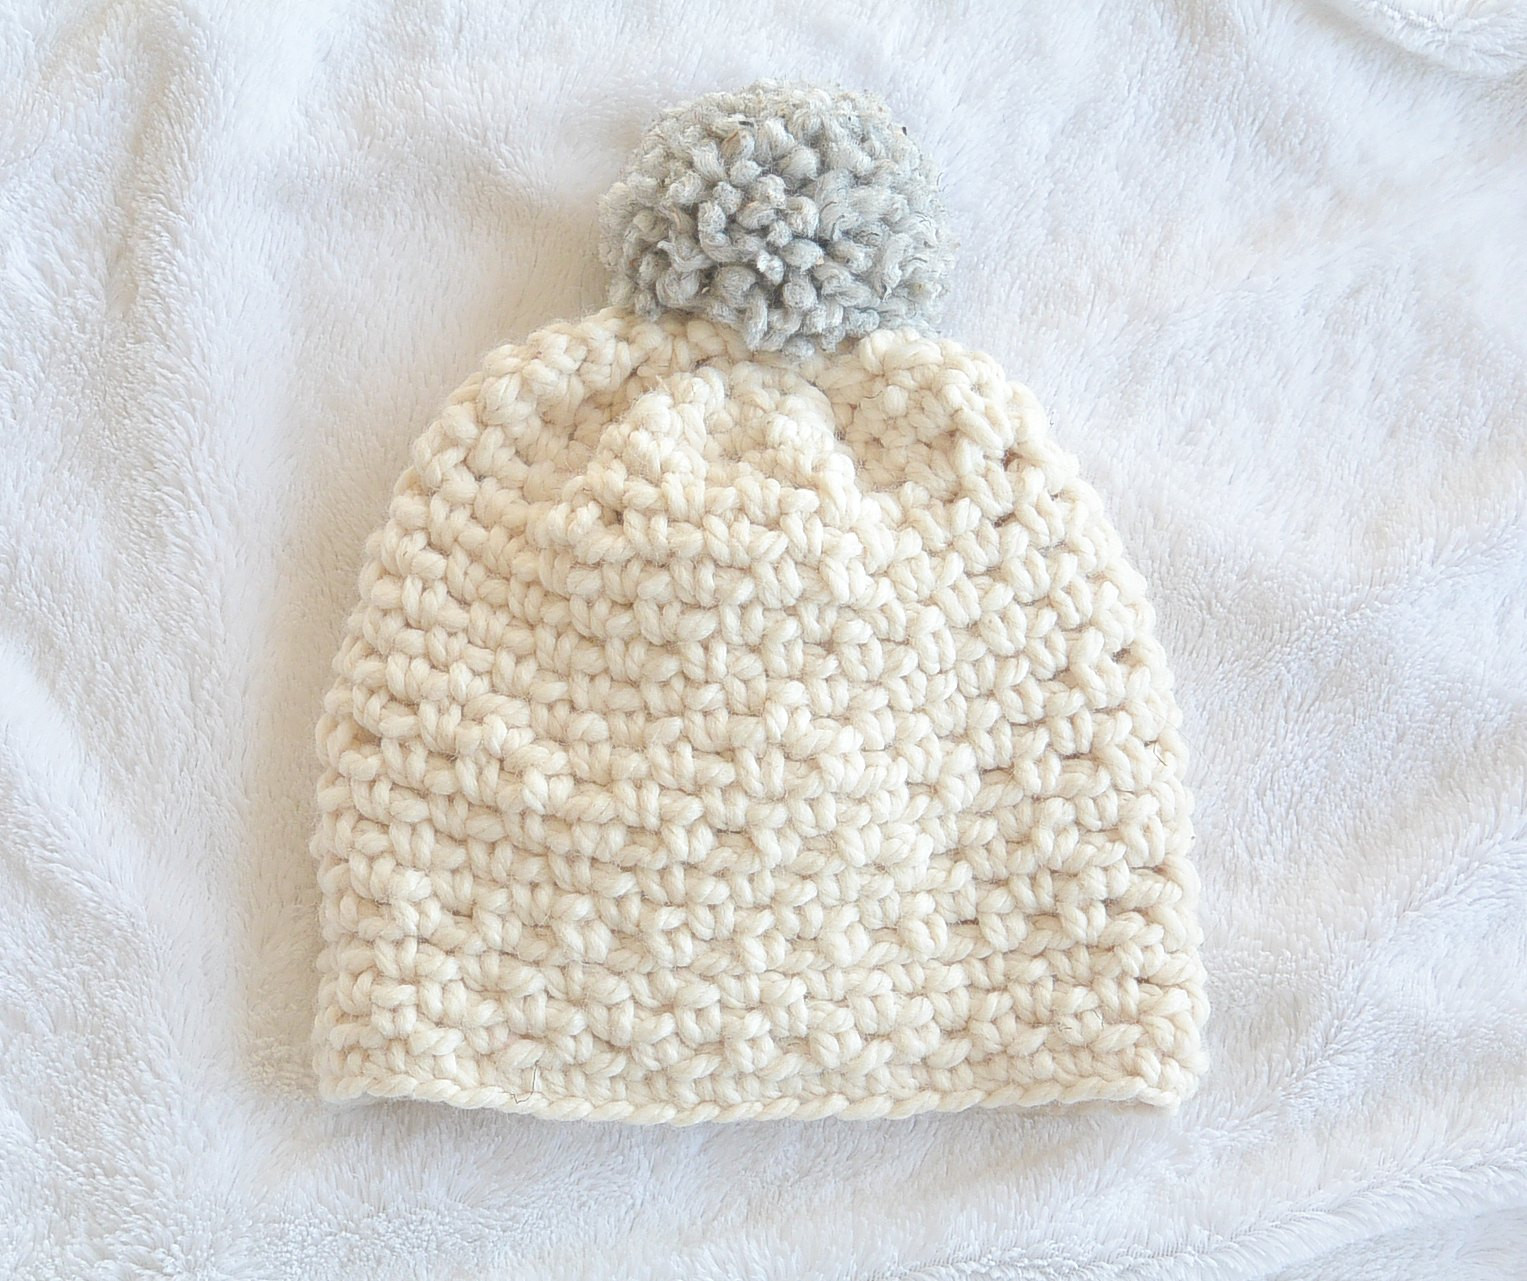 Lovely Ski Lodge Chunky Crochet Pom Hat Pattern – Mama In A Stitch Chunky Crochet Beanie Pattern Of Elegant Chunky Knit Hat Pattern Roundup 12 Quick & Cozy Patterns Chunky Crochet Beanie Pattern